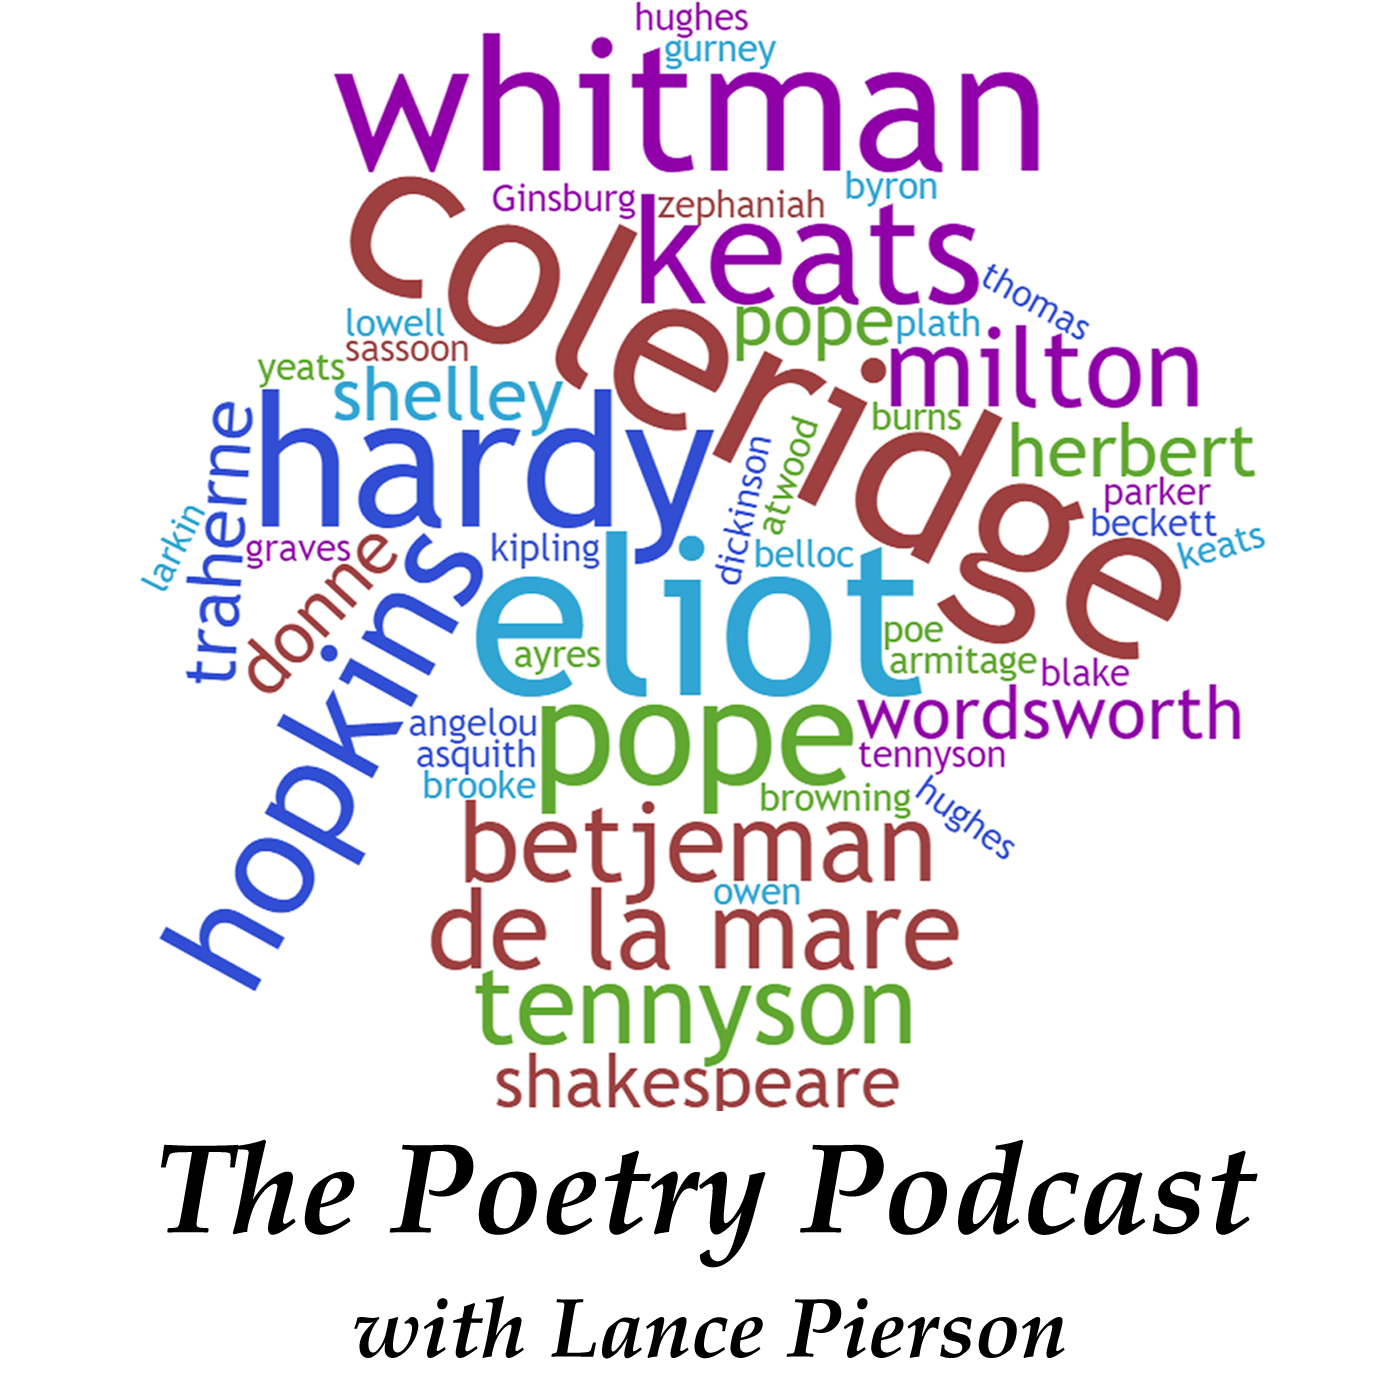 The Poetry Podcast with Lance Pierson show art